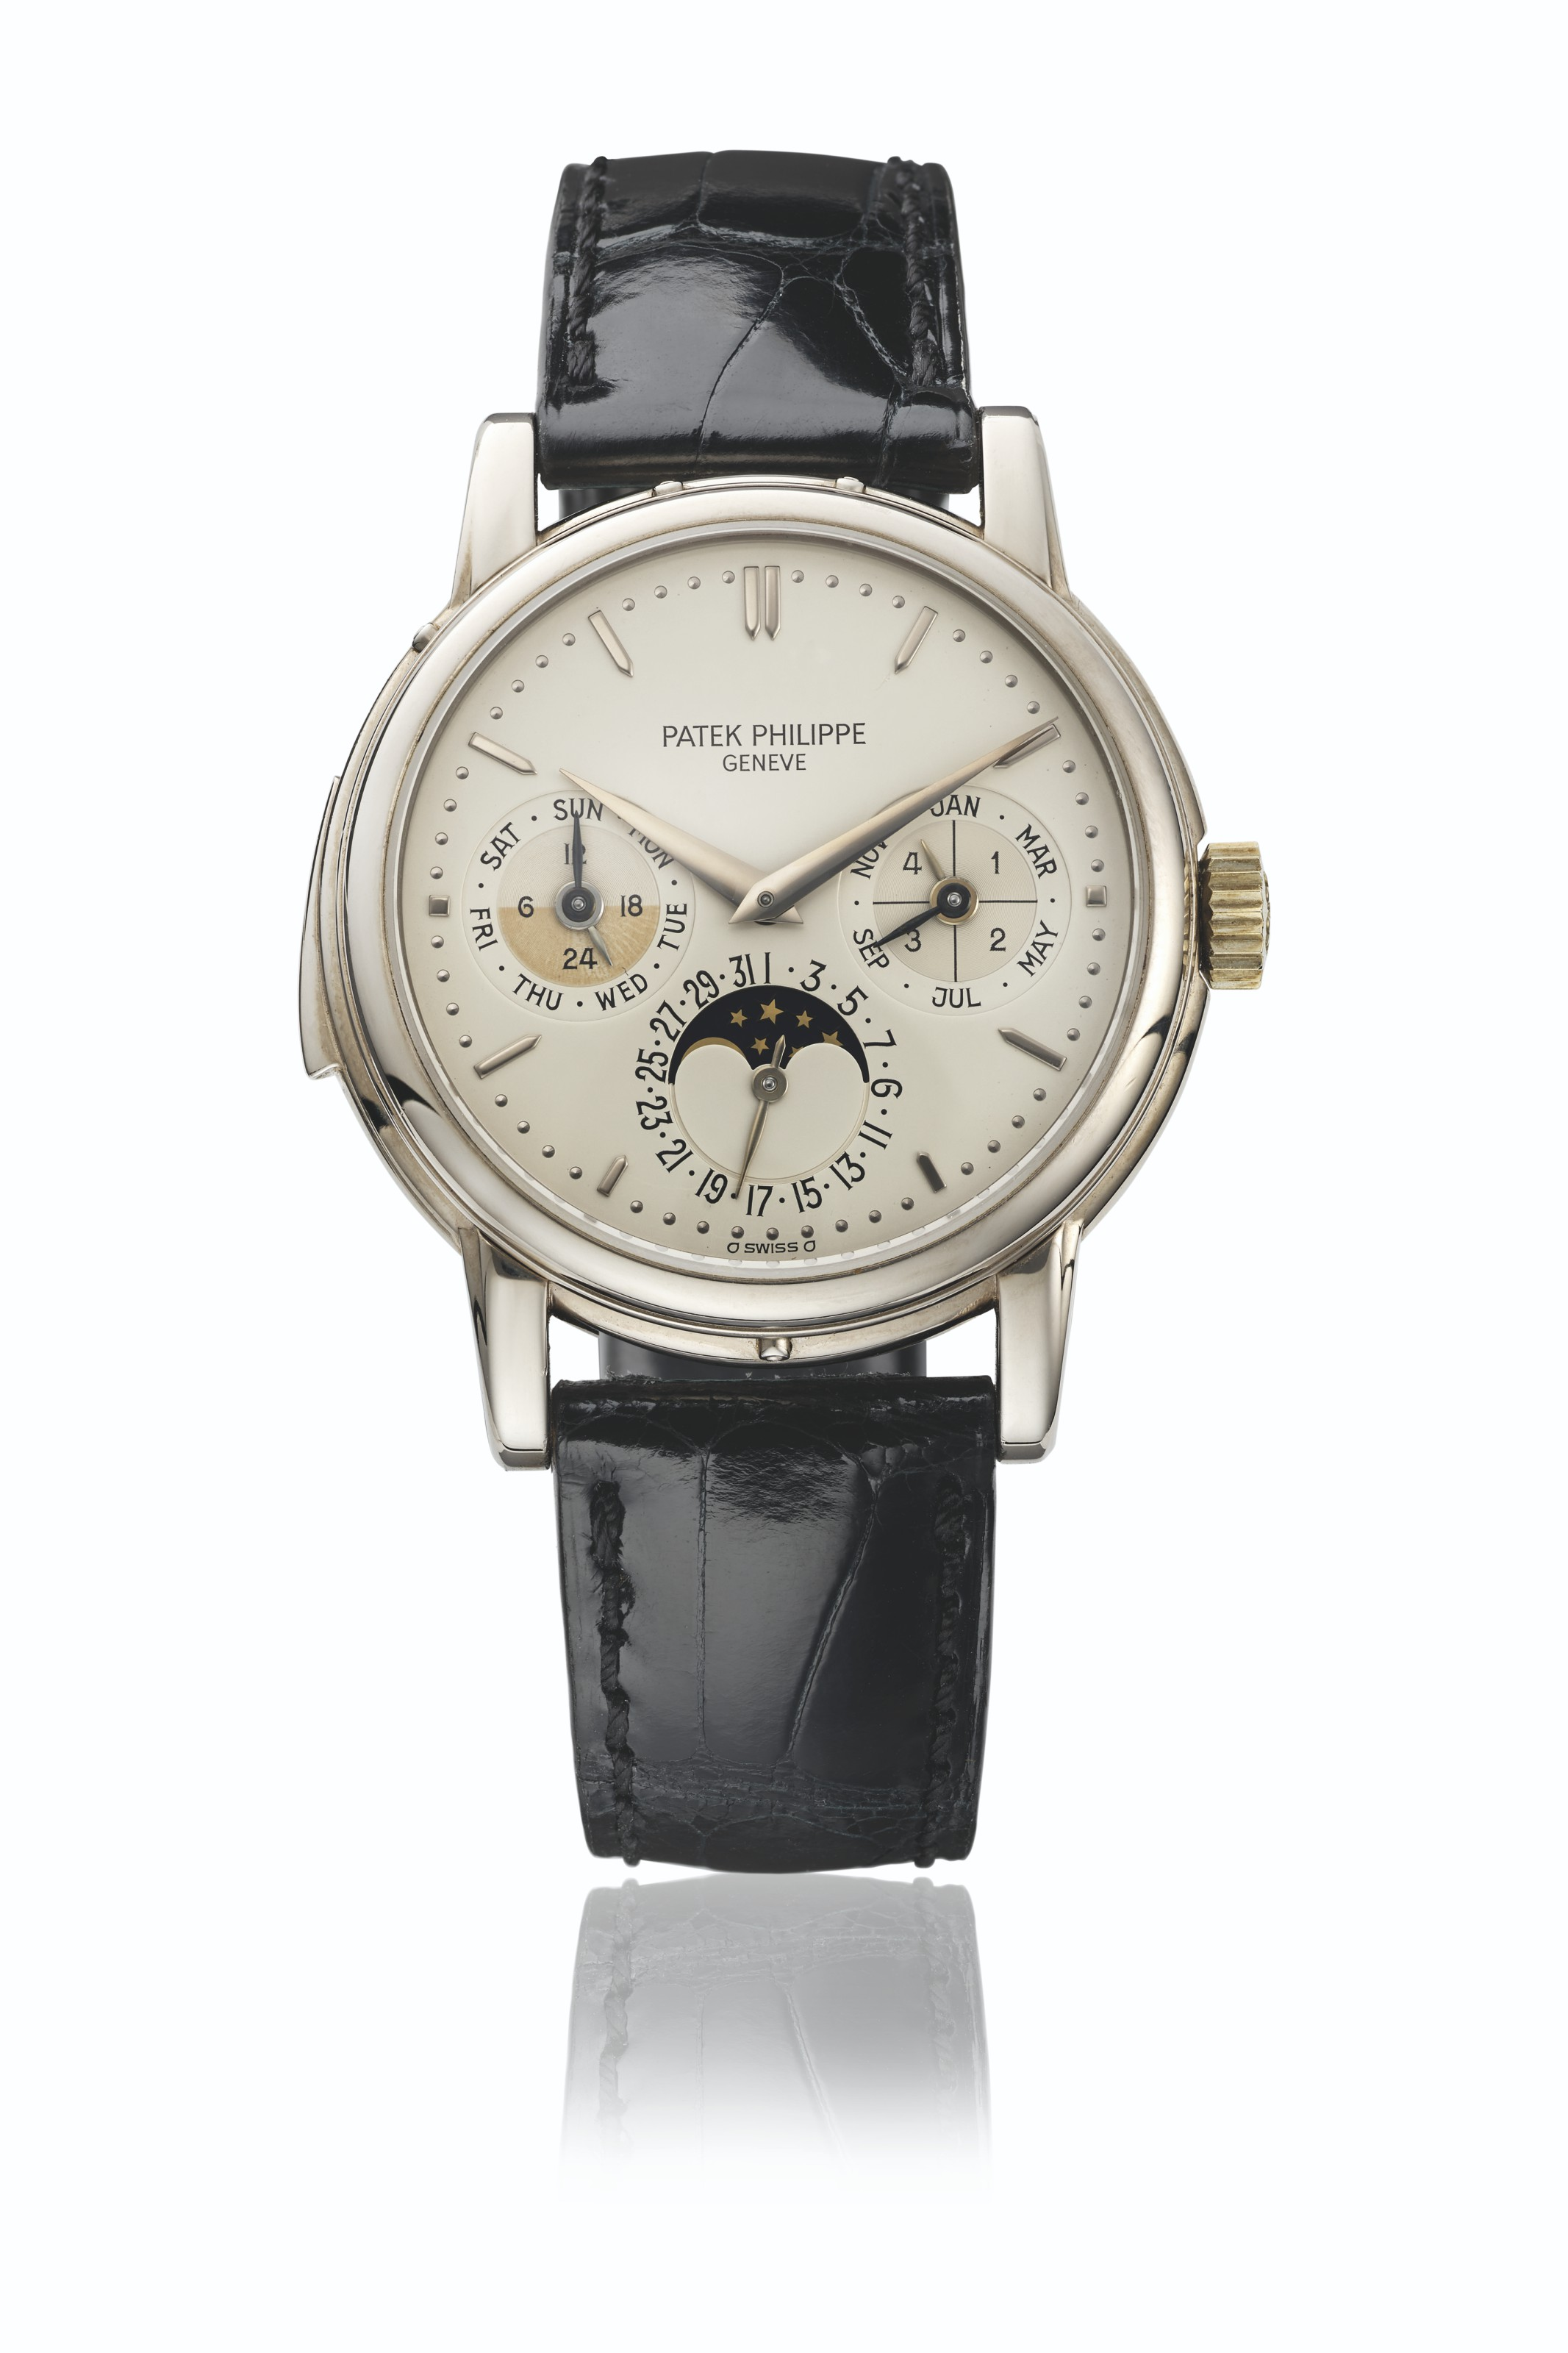 PATEK PHILIPPE. AN EXTREMELY RARE 18K WHITE GOLD AUTOMATIC MINUTE REPEATING PERPETUAL CALENDAR WRISTWATCH WITH MOON PHASES, 24 HOUR, LEAP YEAR, DAY/NIGHT INDICATION AND BOX